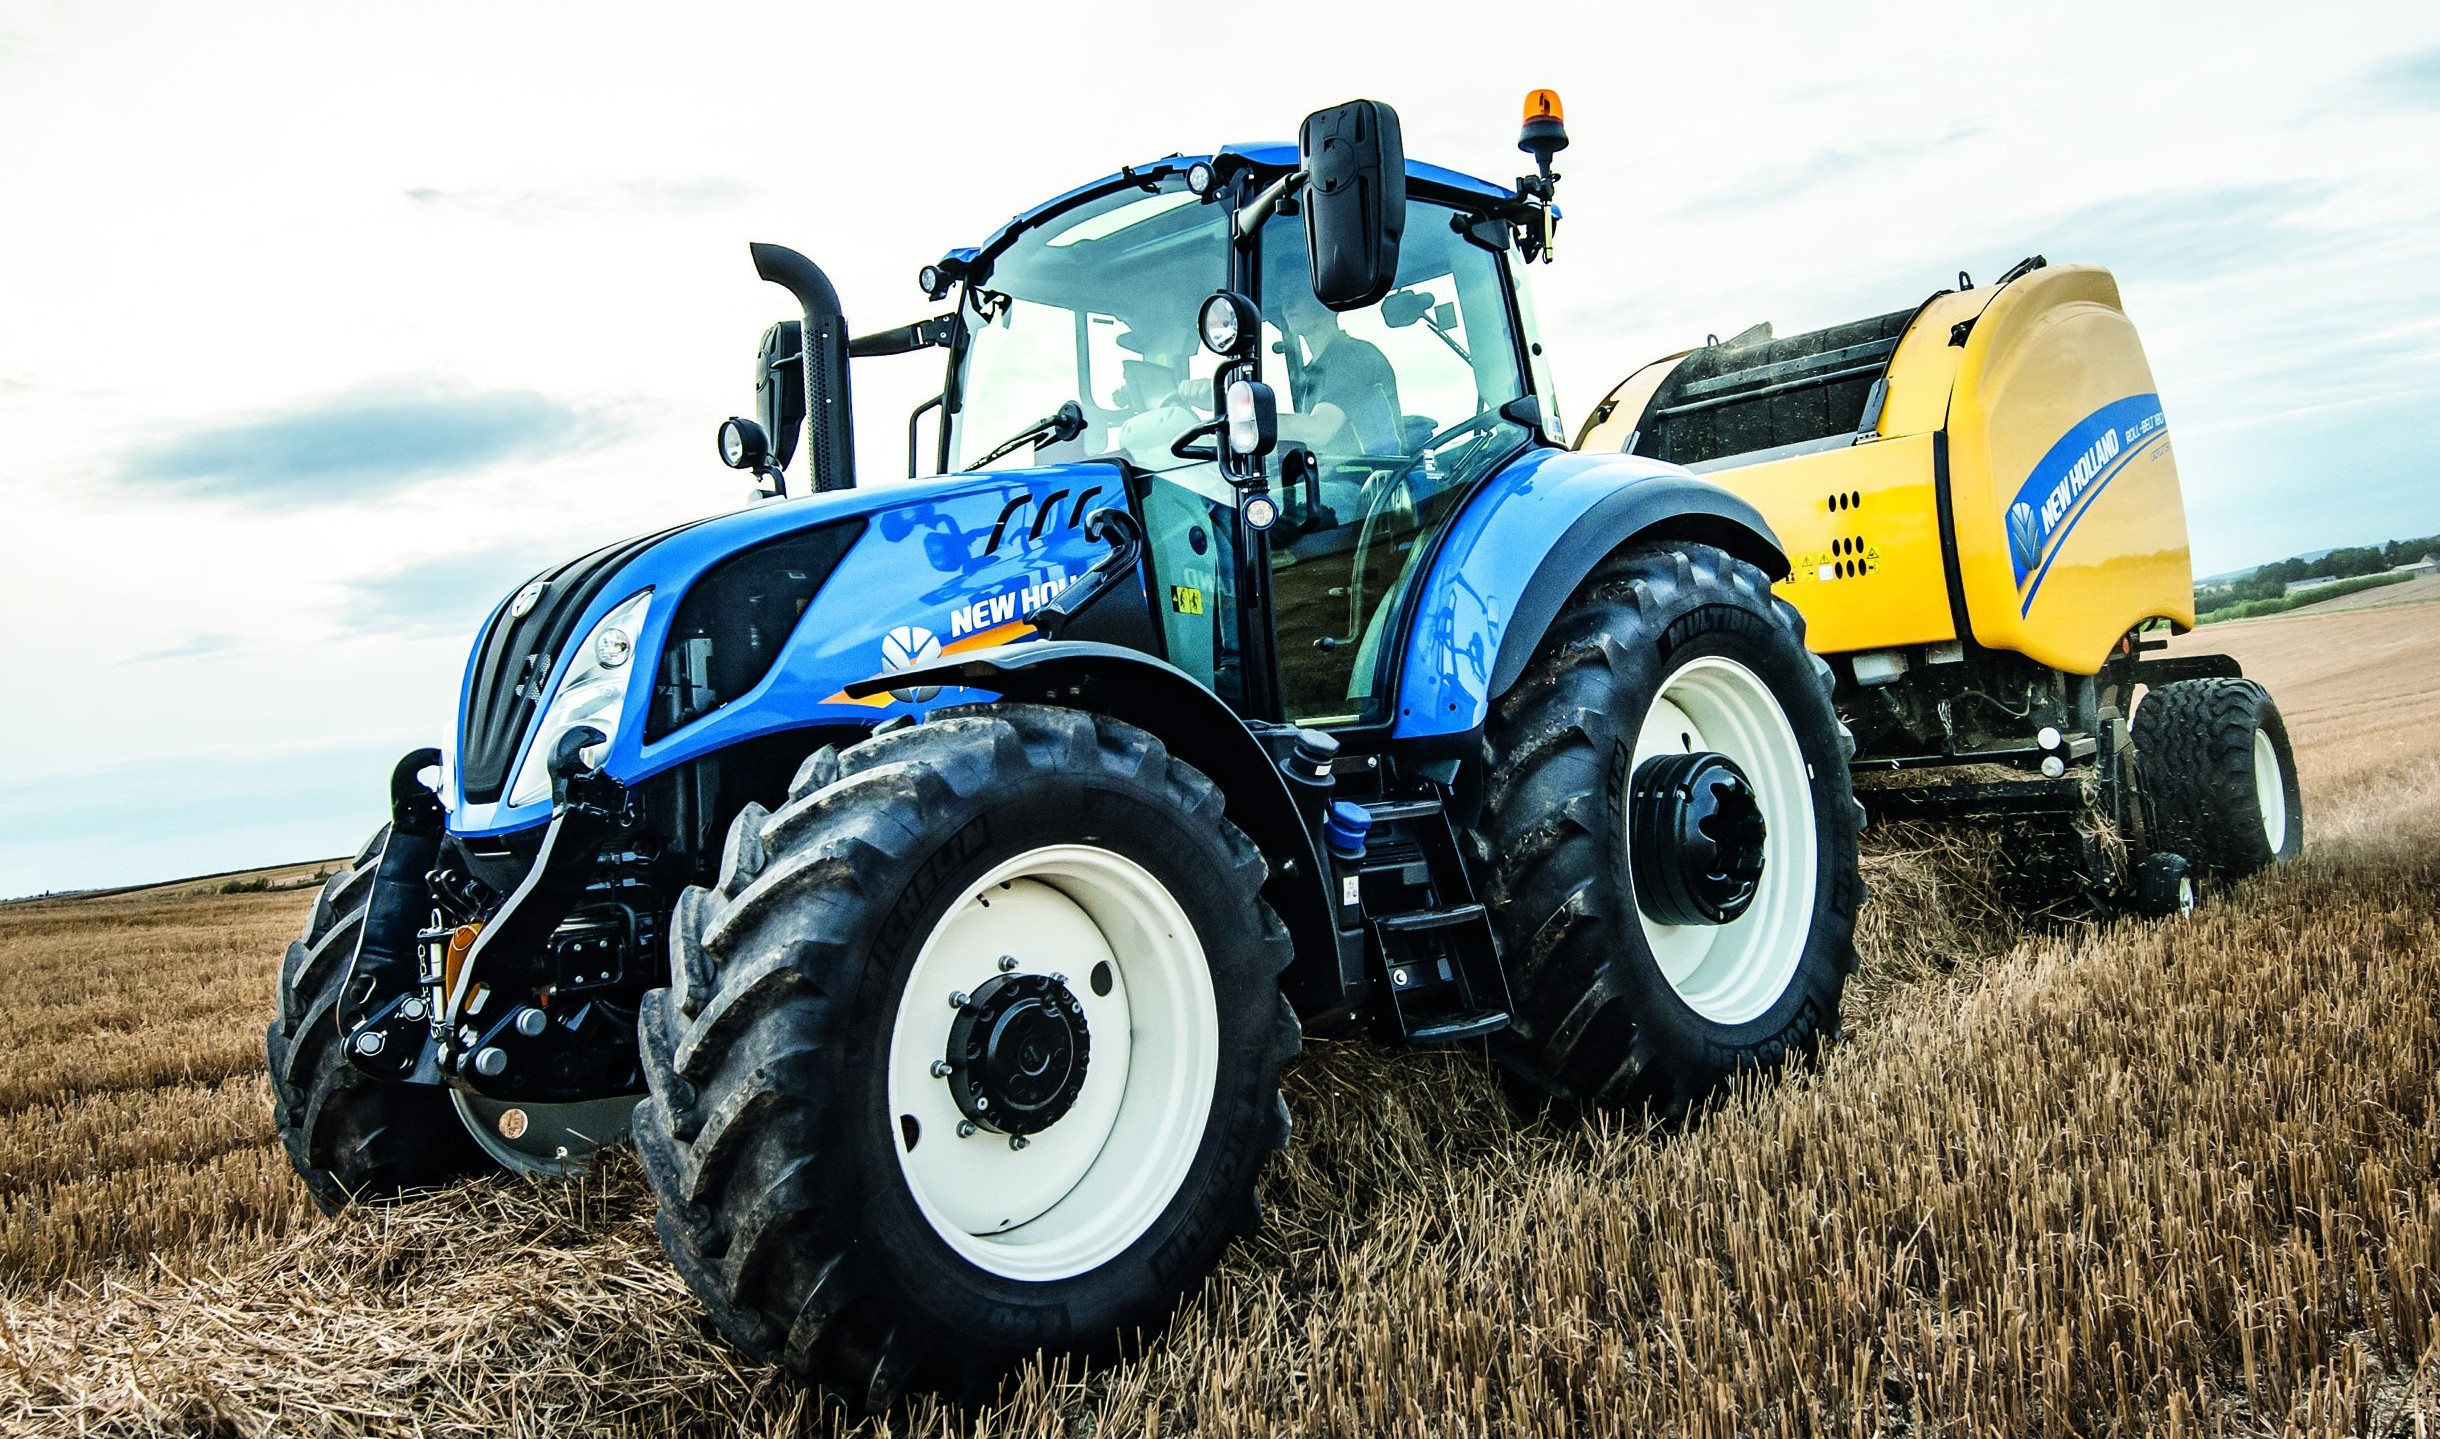 Australia's Top 10 Farm Tractor Brands